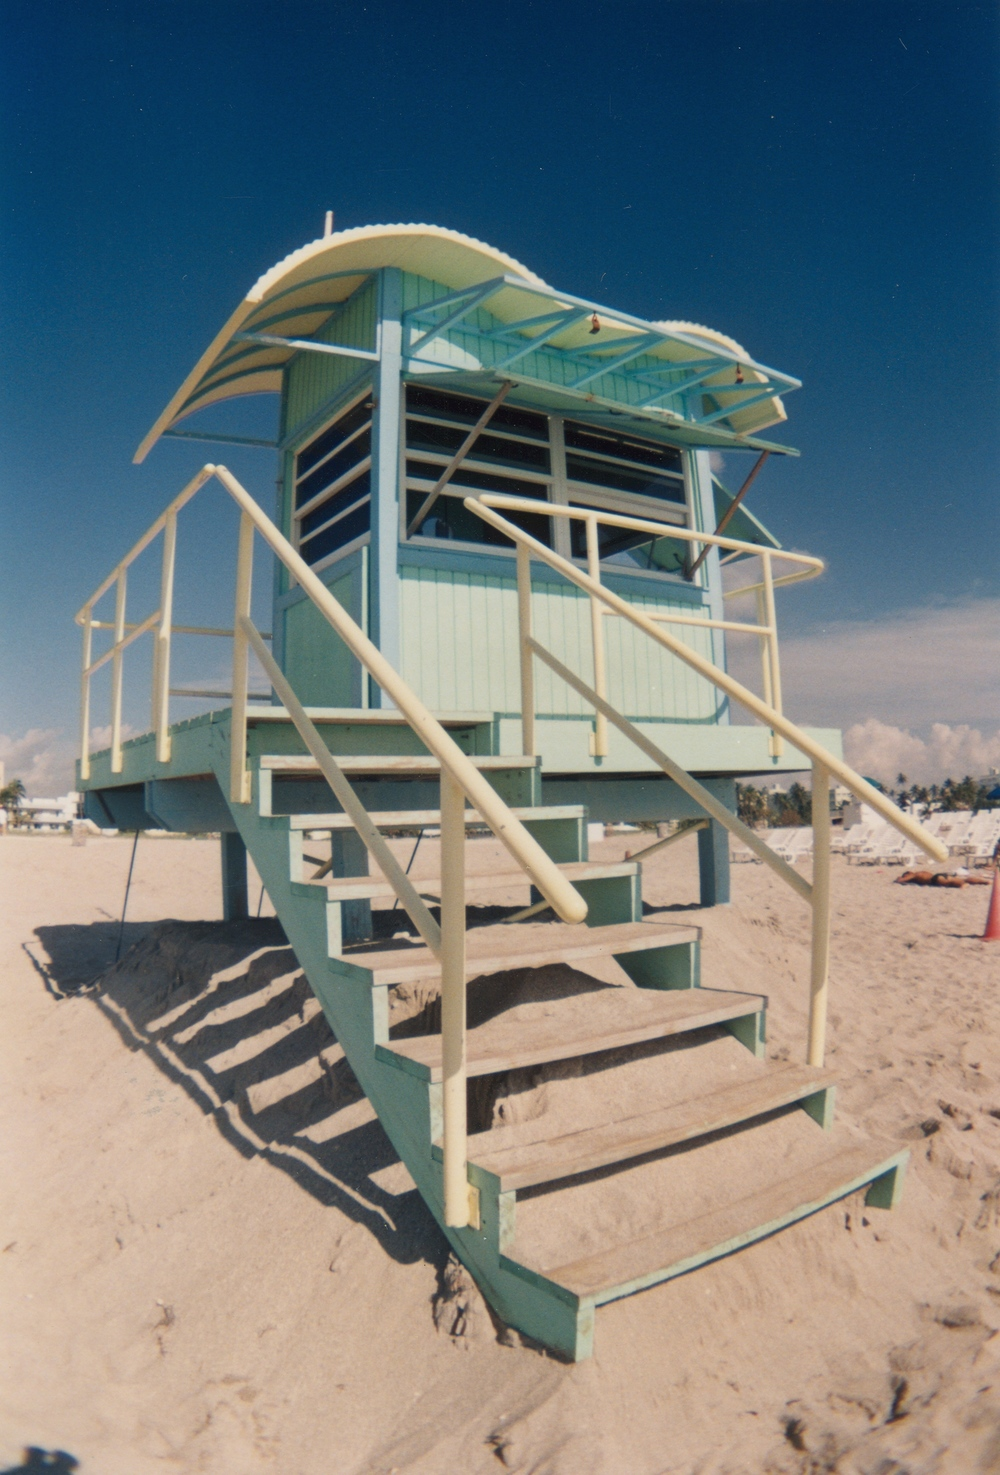 LIFE GUARD STAND 04 A.jpg